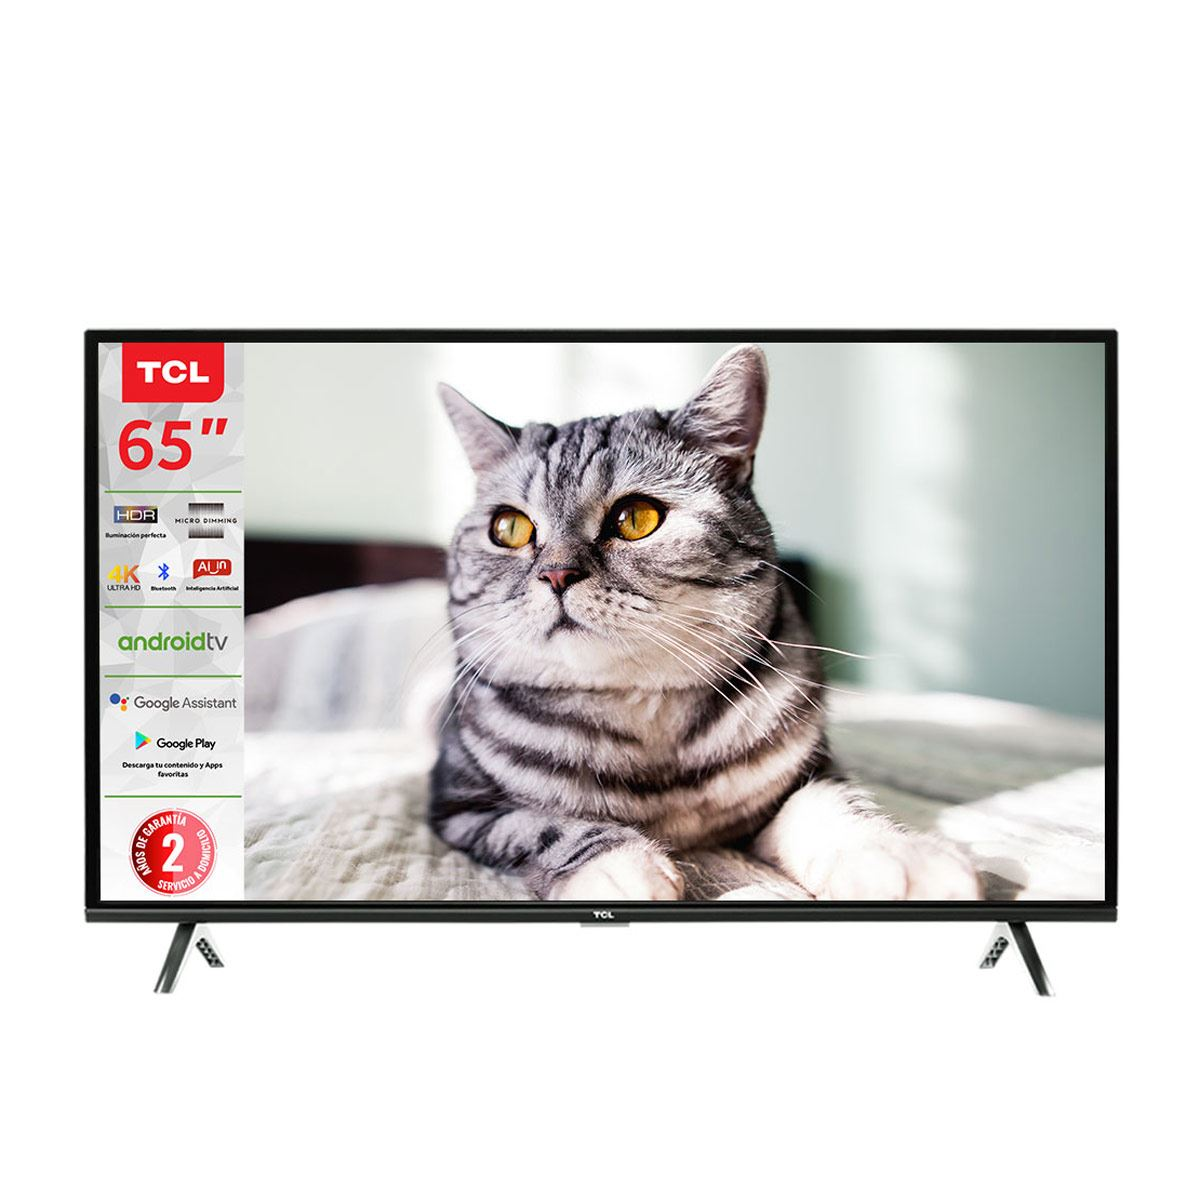 "Pantalla TCL 65"" 4K/UHD Smart TV 65A423 (ANDROID TV)"